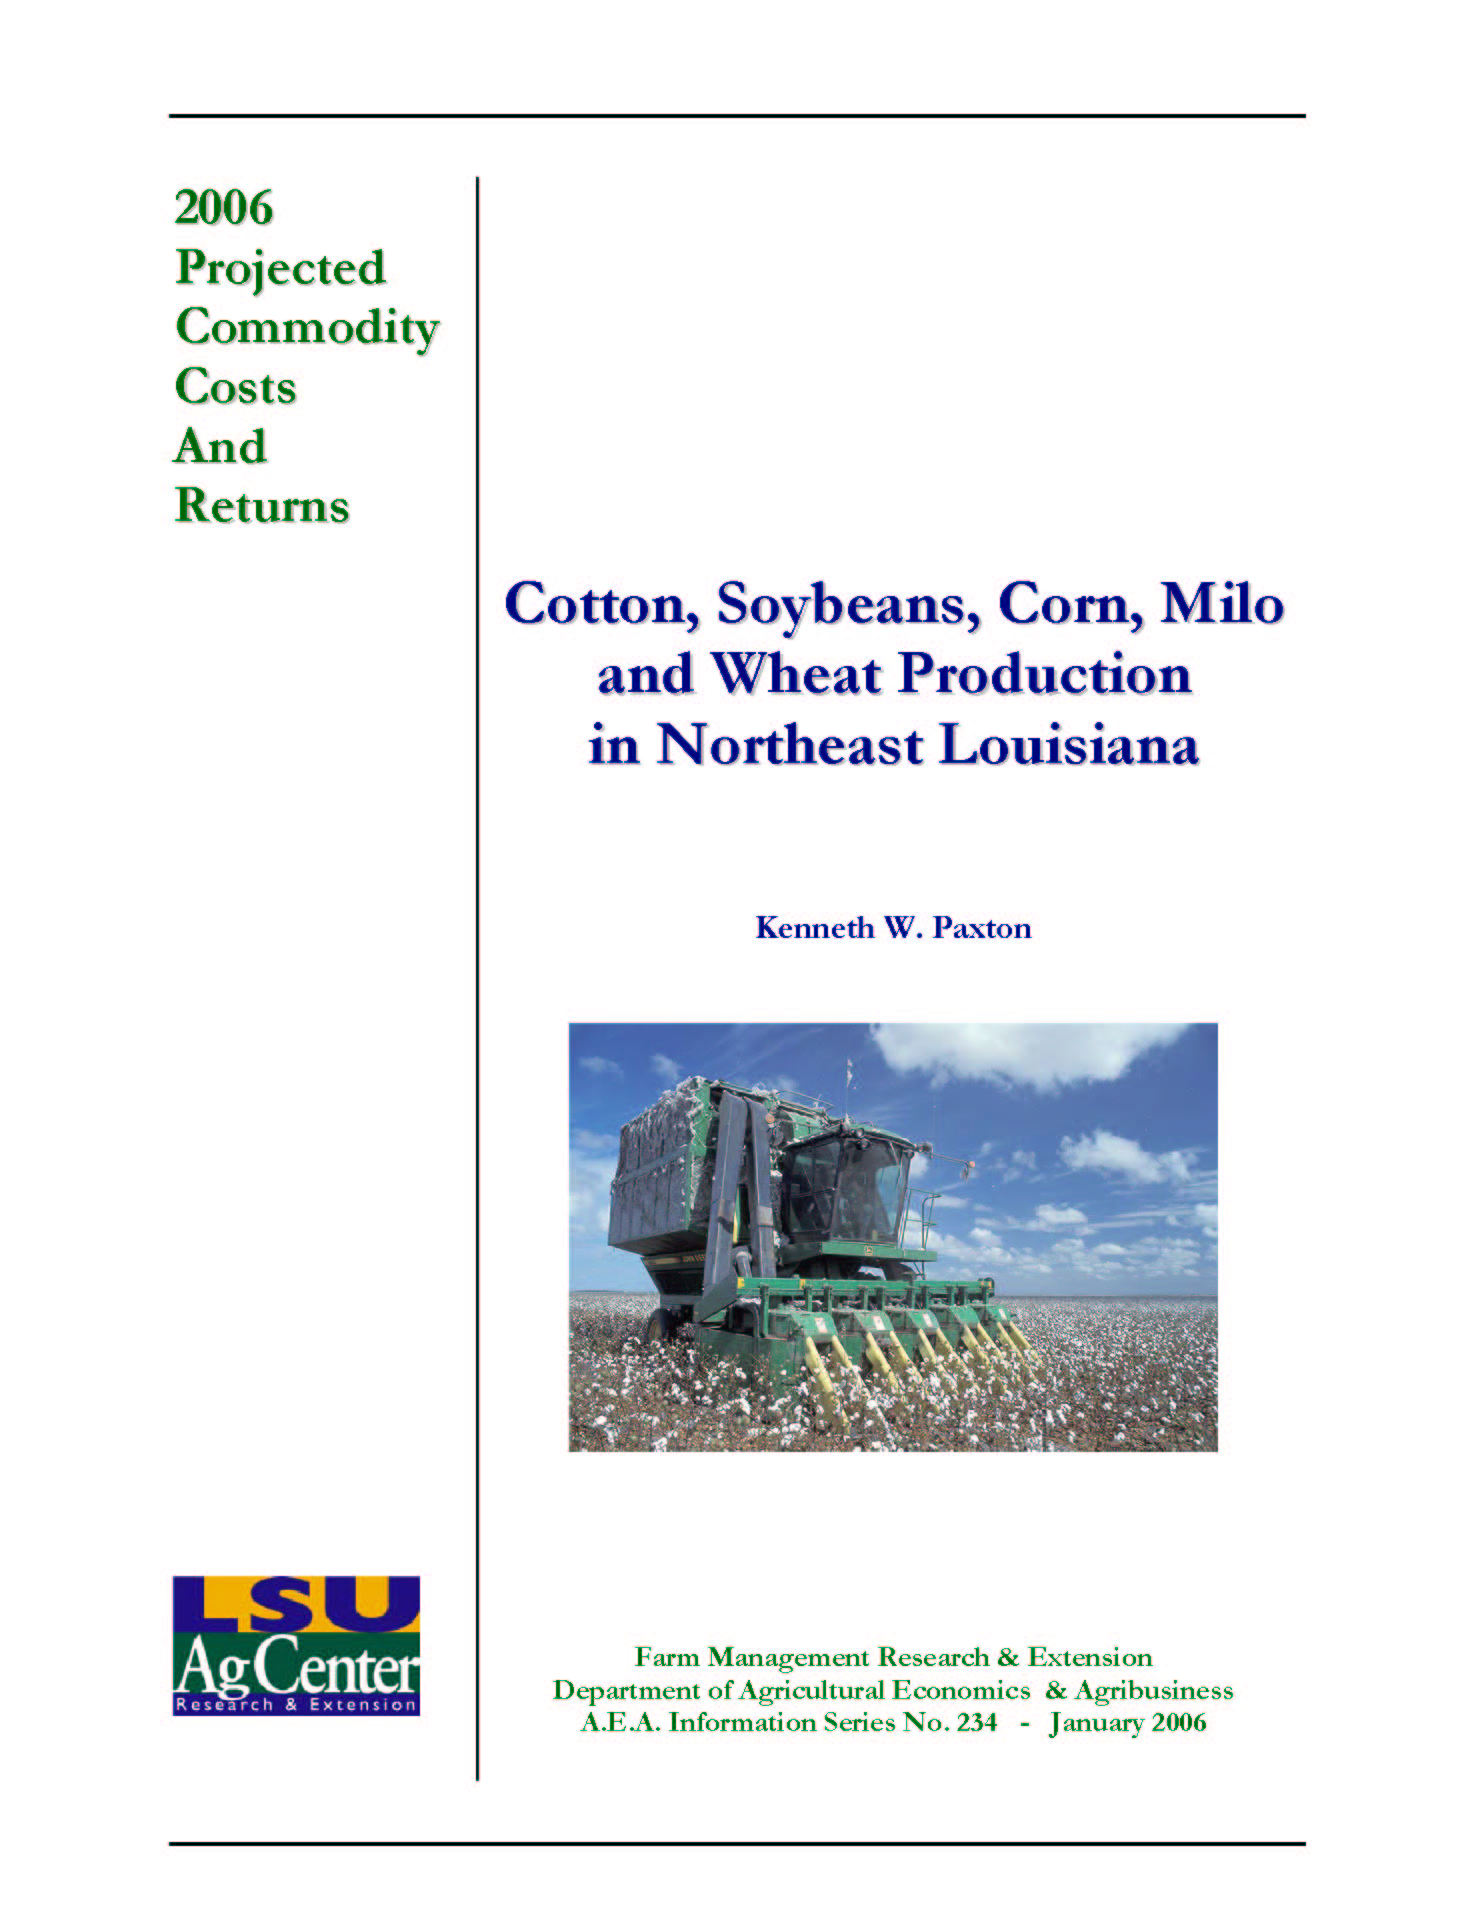 2006 Northeast Louisiana Projected Cotton Soybeans Corn Milo and Wheat Production Costs